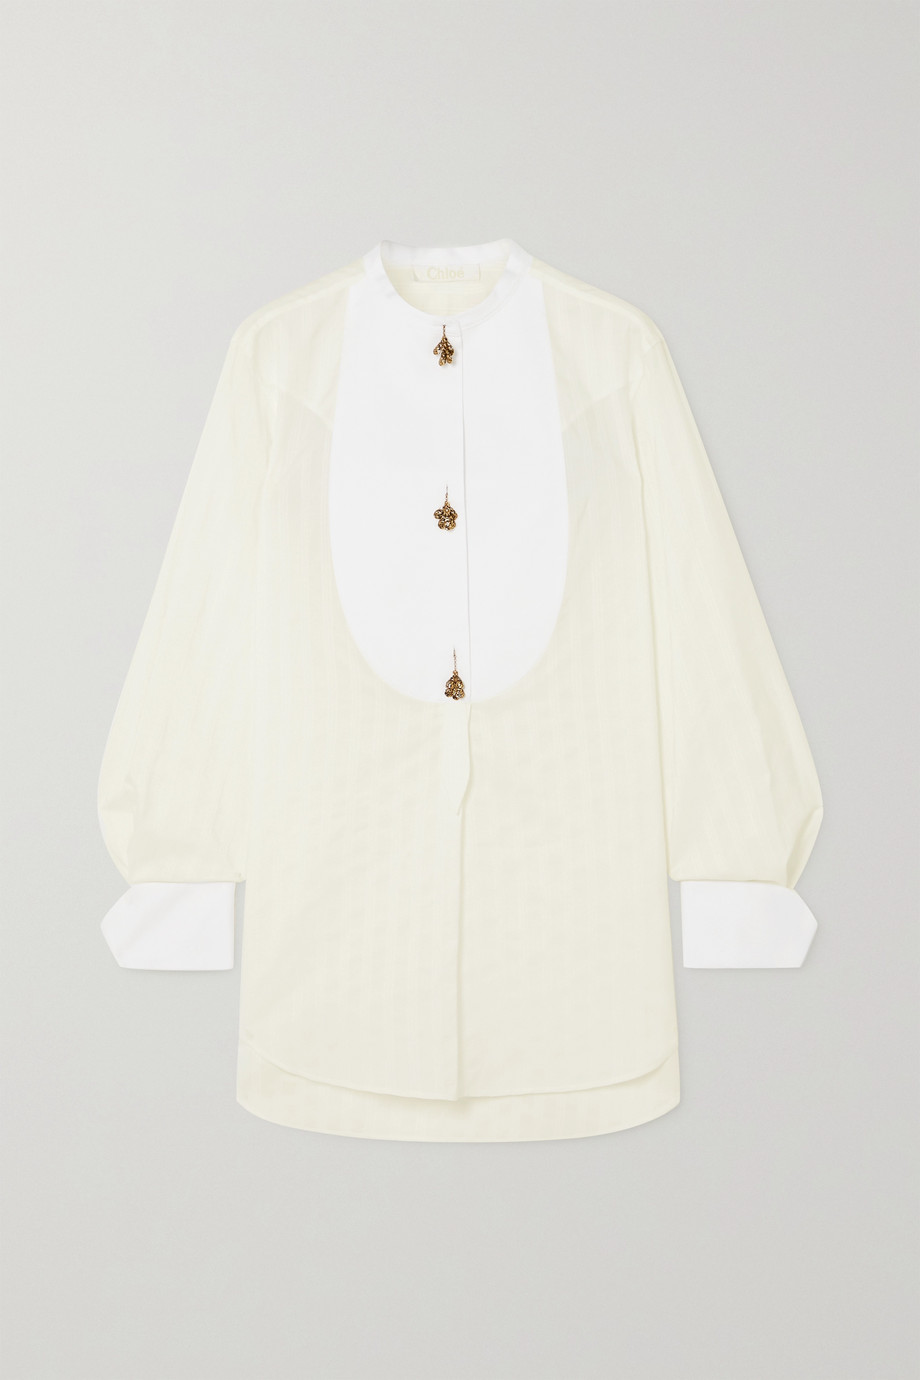 Chloé Embellished striped cotton-jacquard shirt